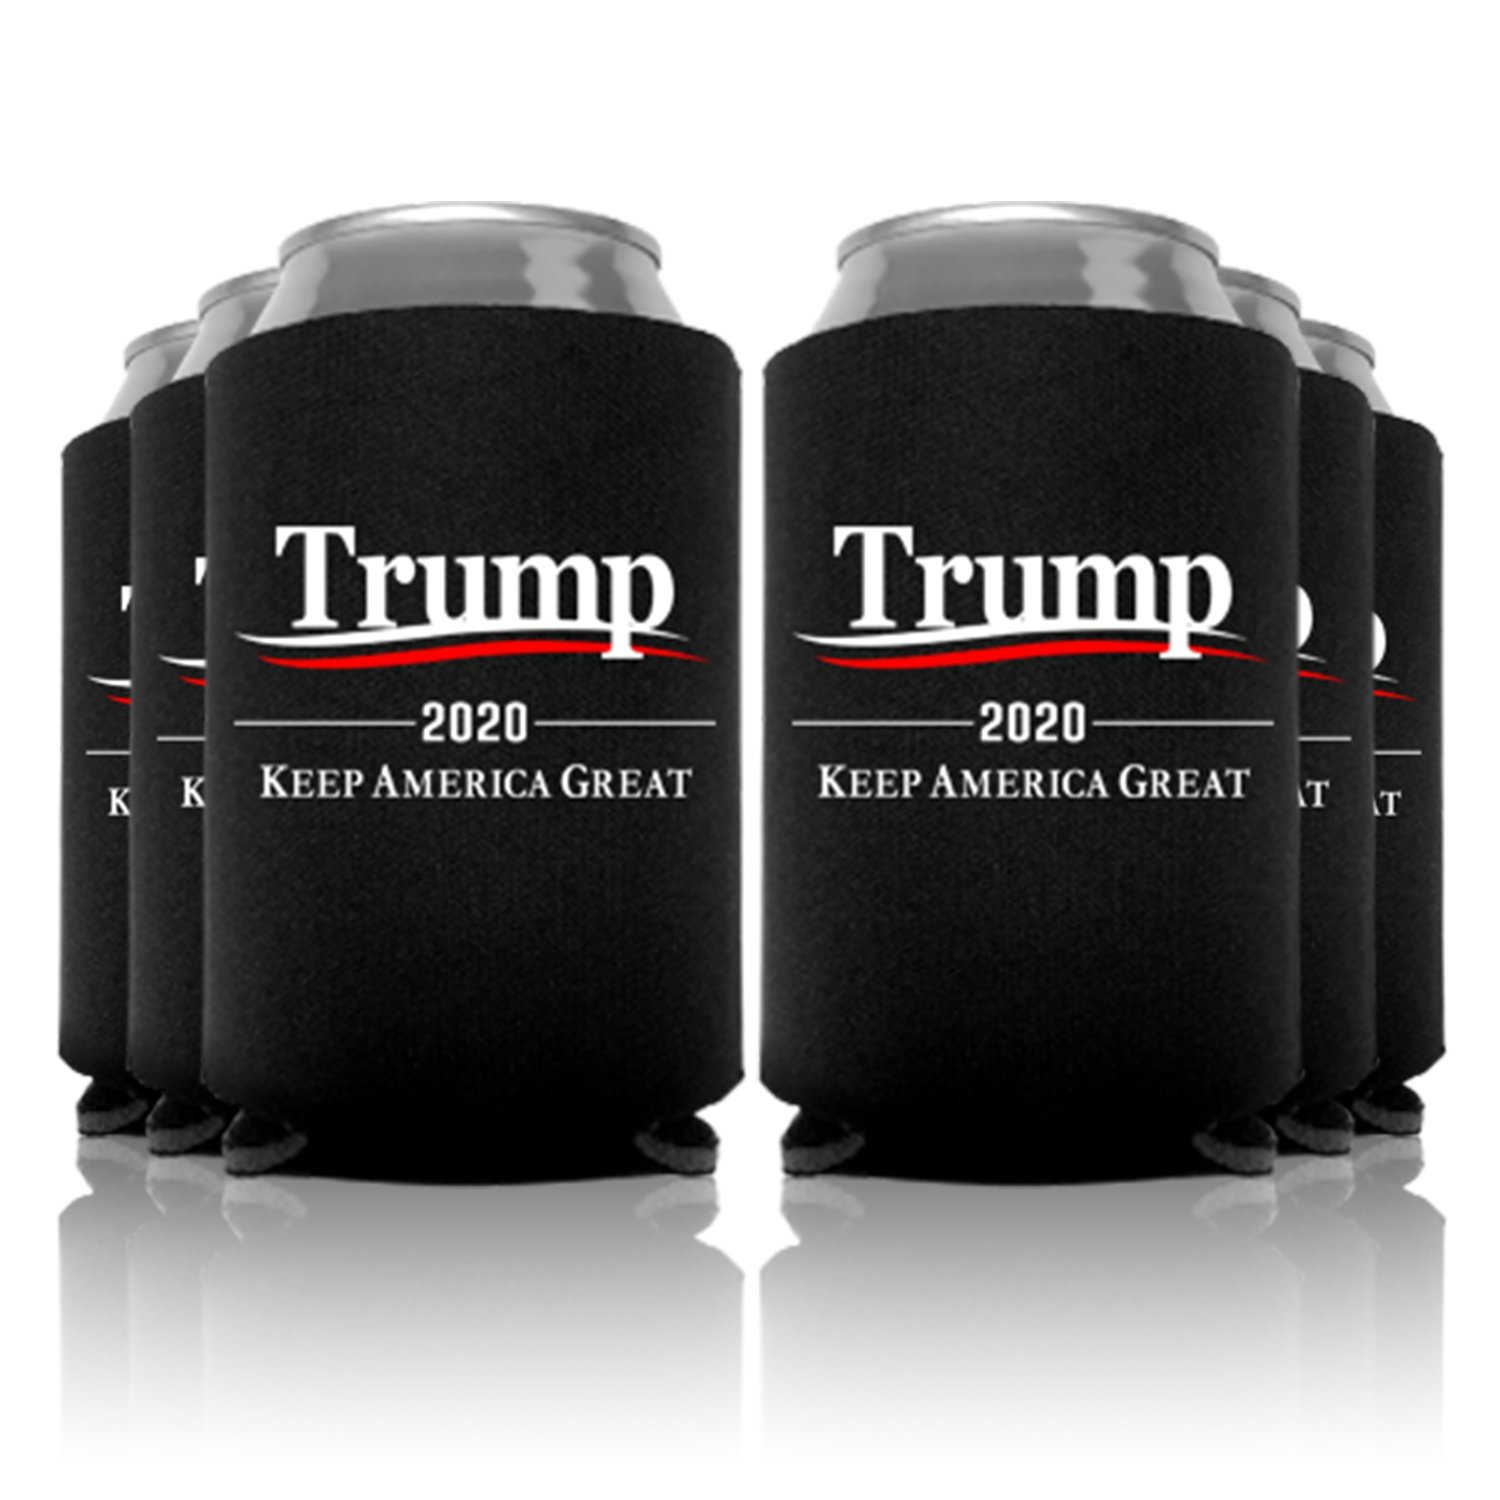 Trump 2020 Keep America Great Wavy Can Coolers Party Favor, Black, 6 Pc